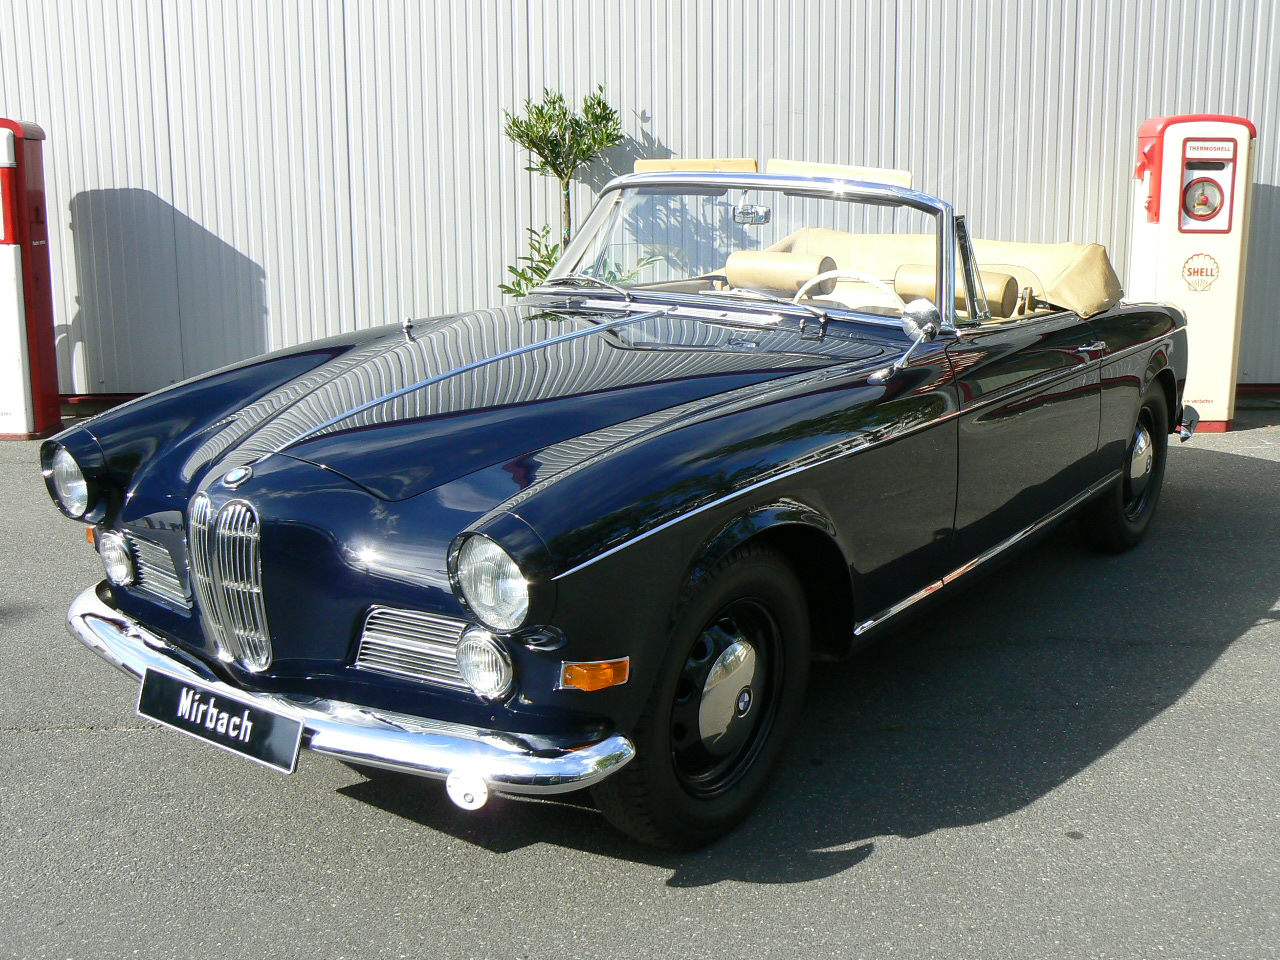 Bmw 503 Cabriolet Photos Photogallery With 11 Pics Carsbase Com